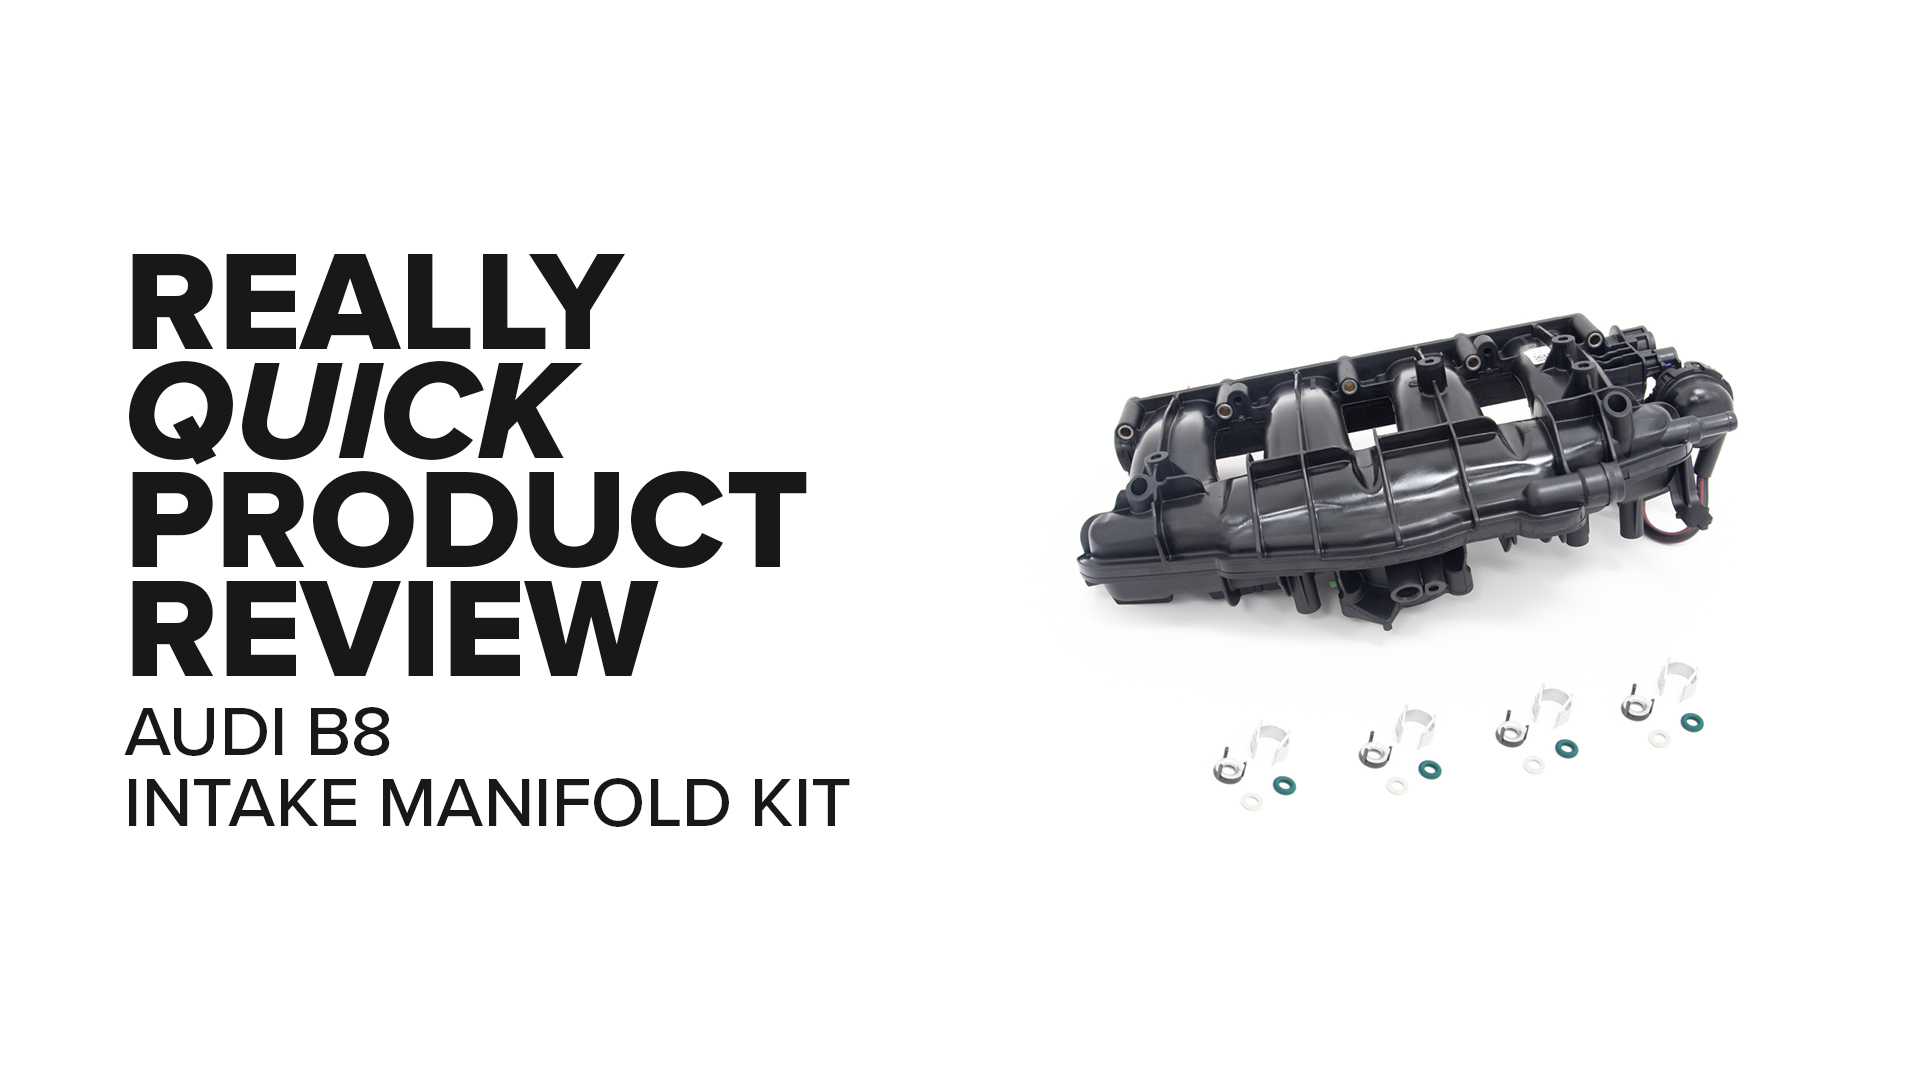 Audi B8 2.0 (A4, Q5, A6 & More) Intake Manifold Kit - Symptoms And Product Review